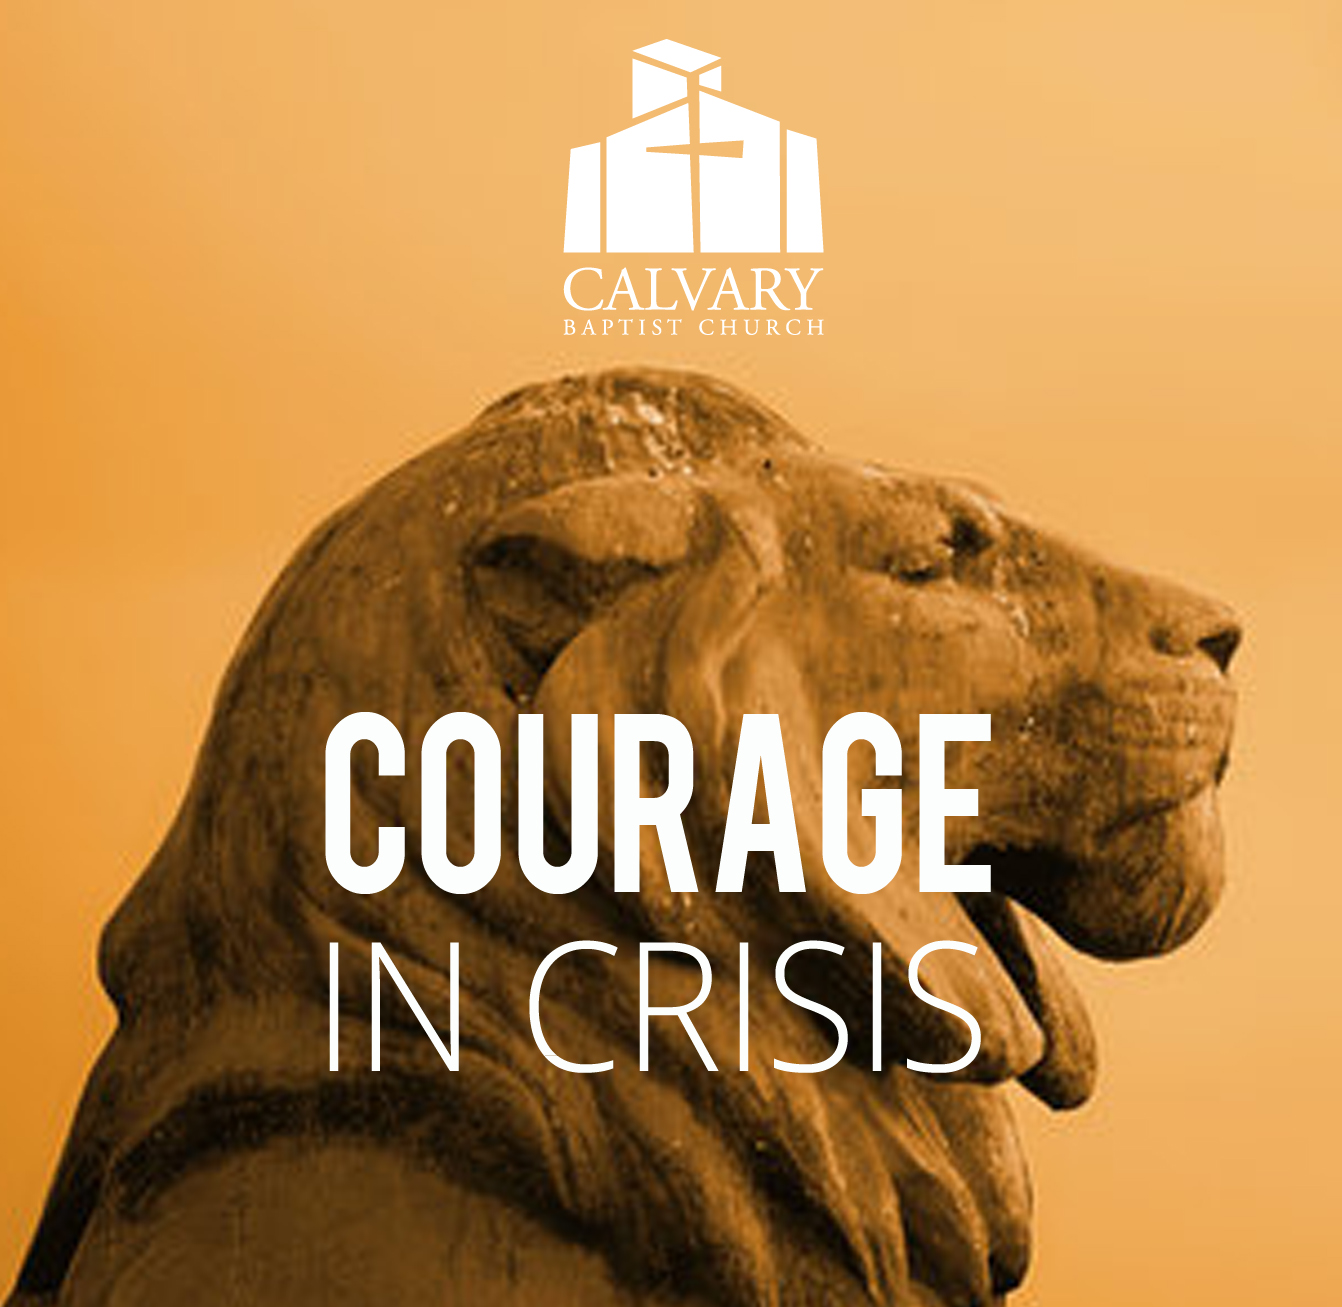 Courage in Crisis